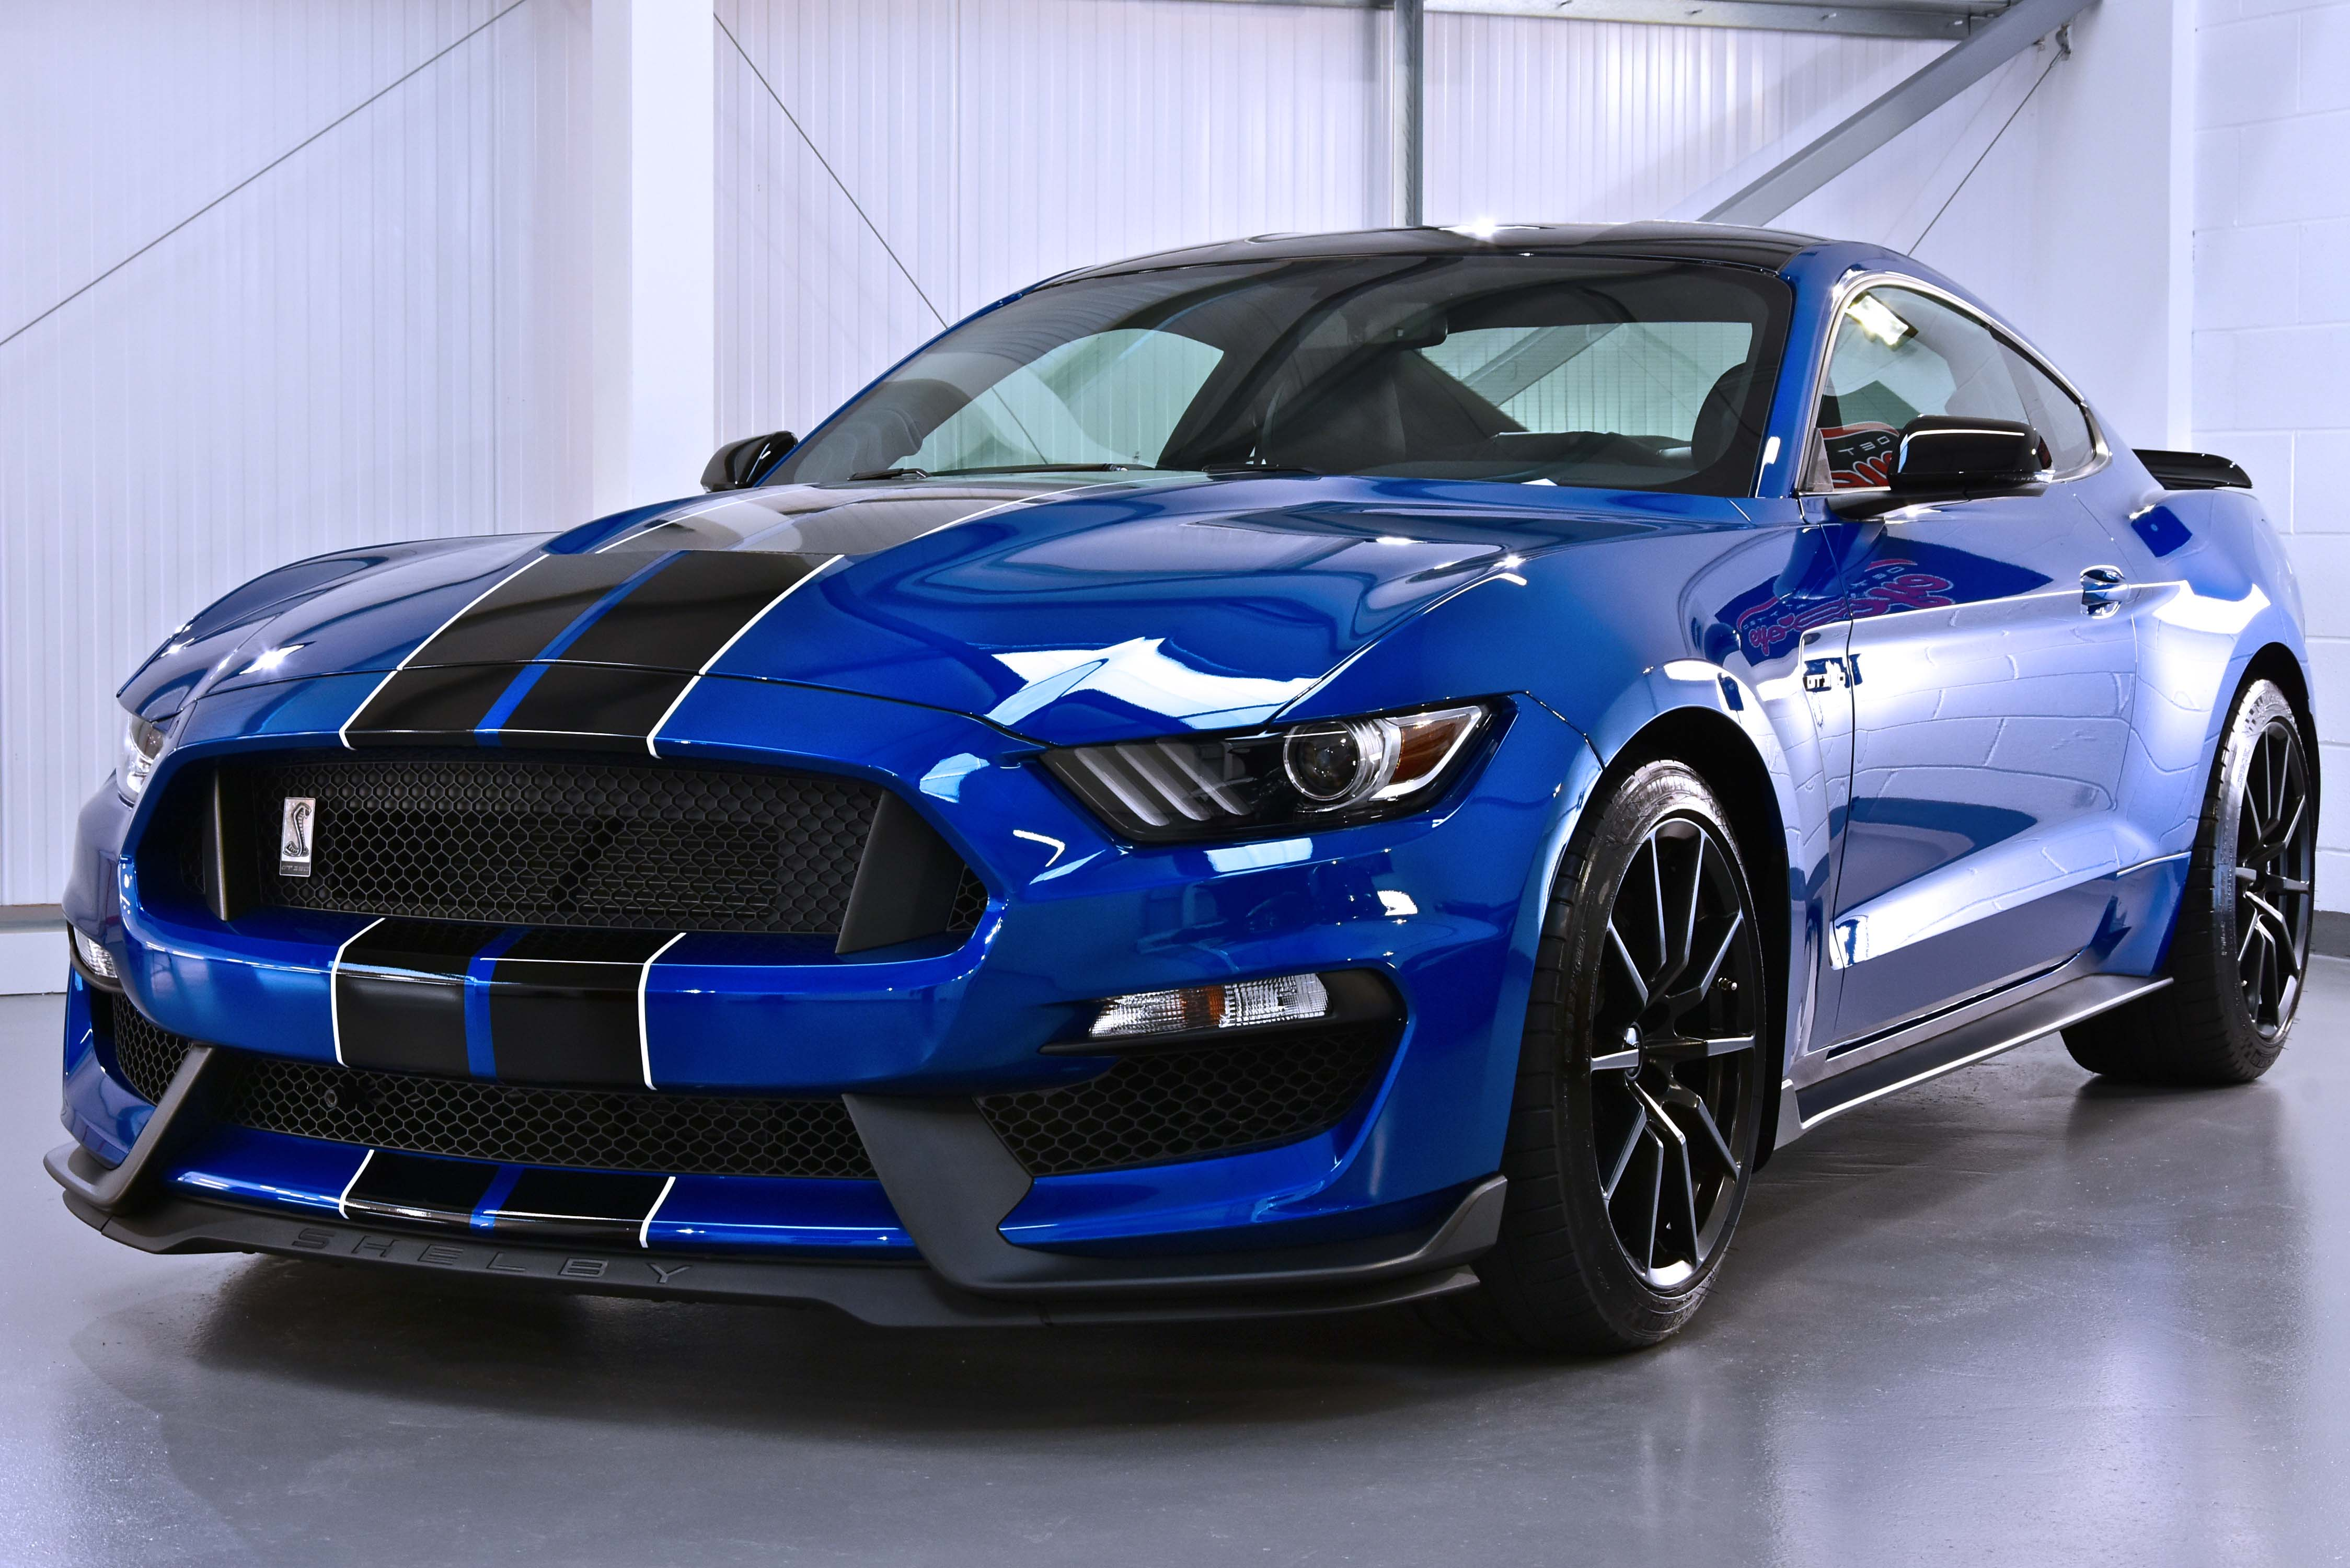 Shelby GT350 New Car Enhancement and Protection Detail with Gtechniq Crystal Serum Ultra, EXOv4 and XPEL PPF